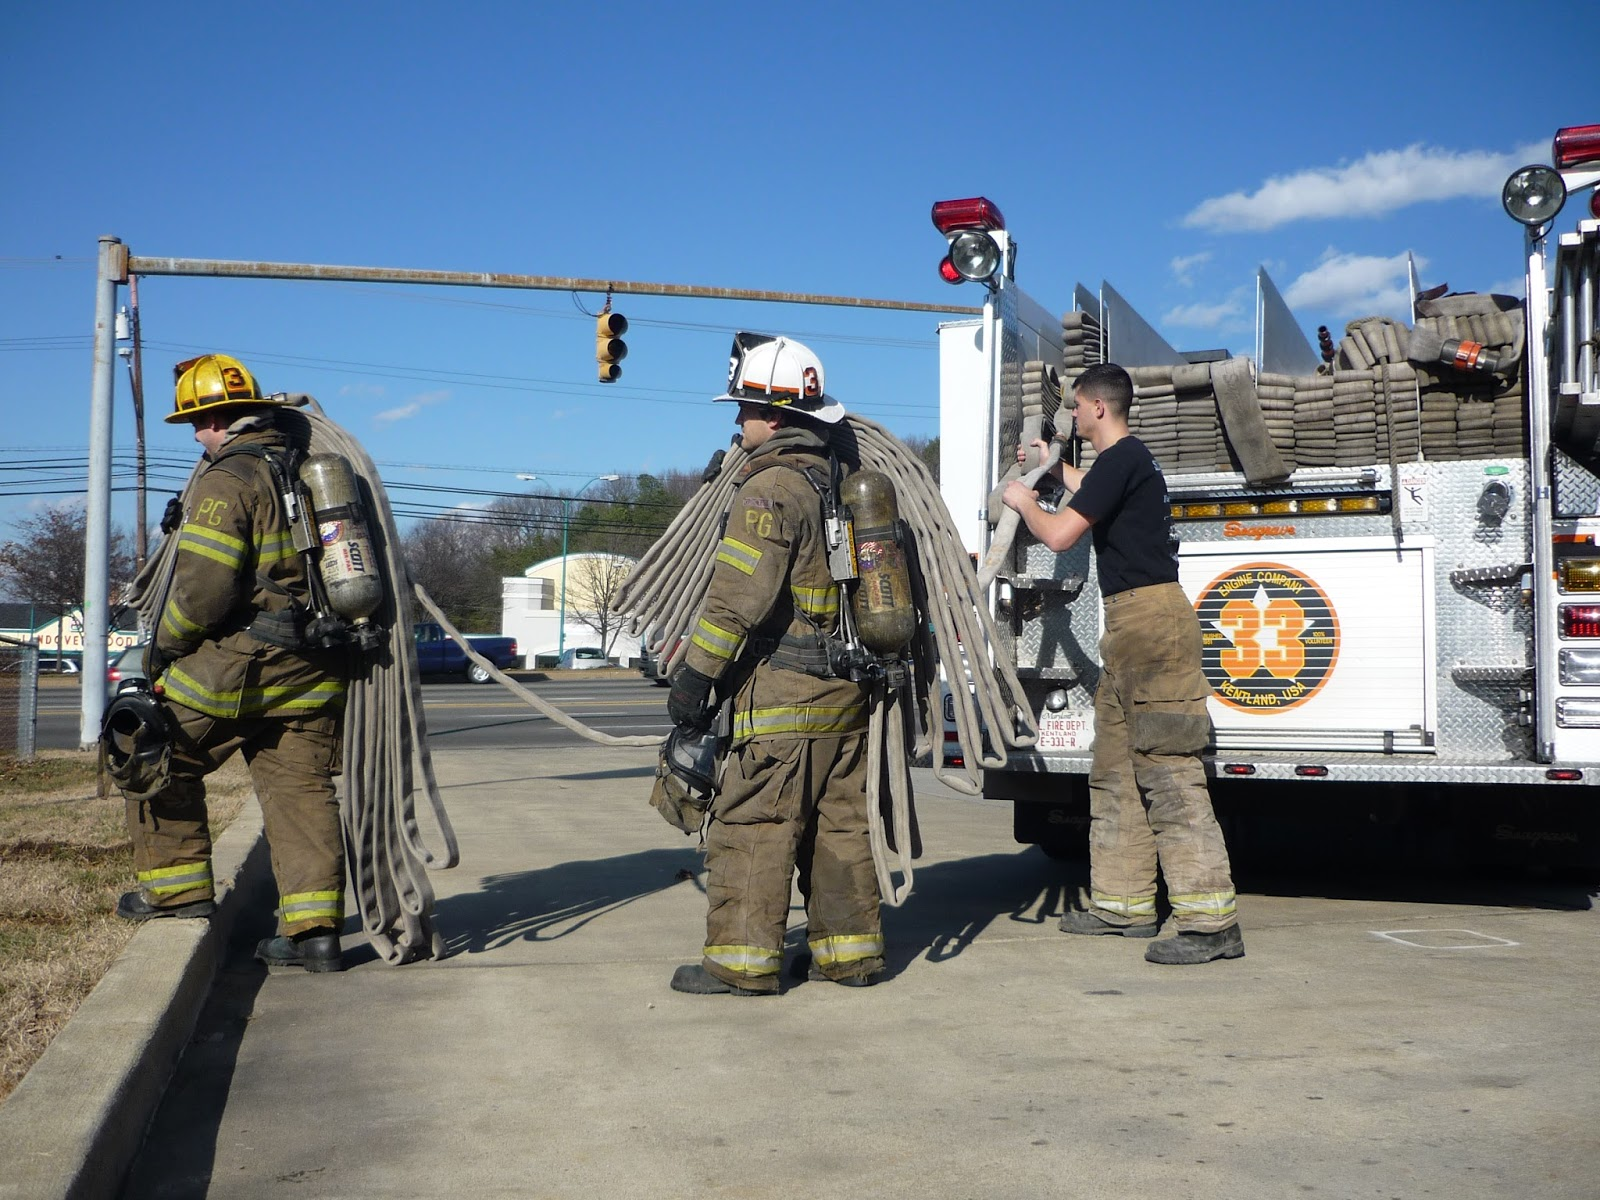 Lead Stretch Advance A Blog On The Fire Service